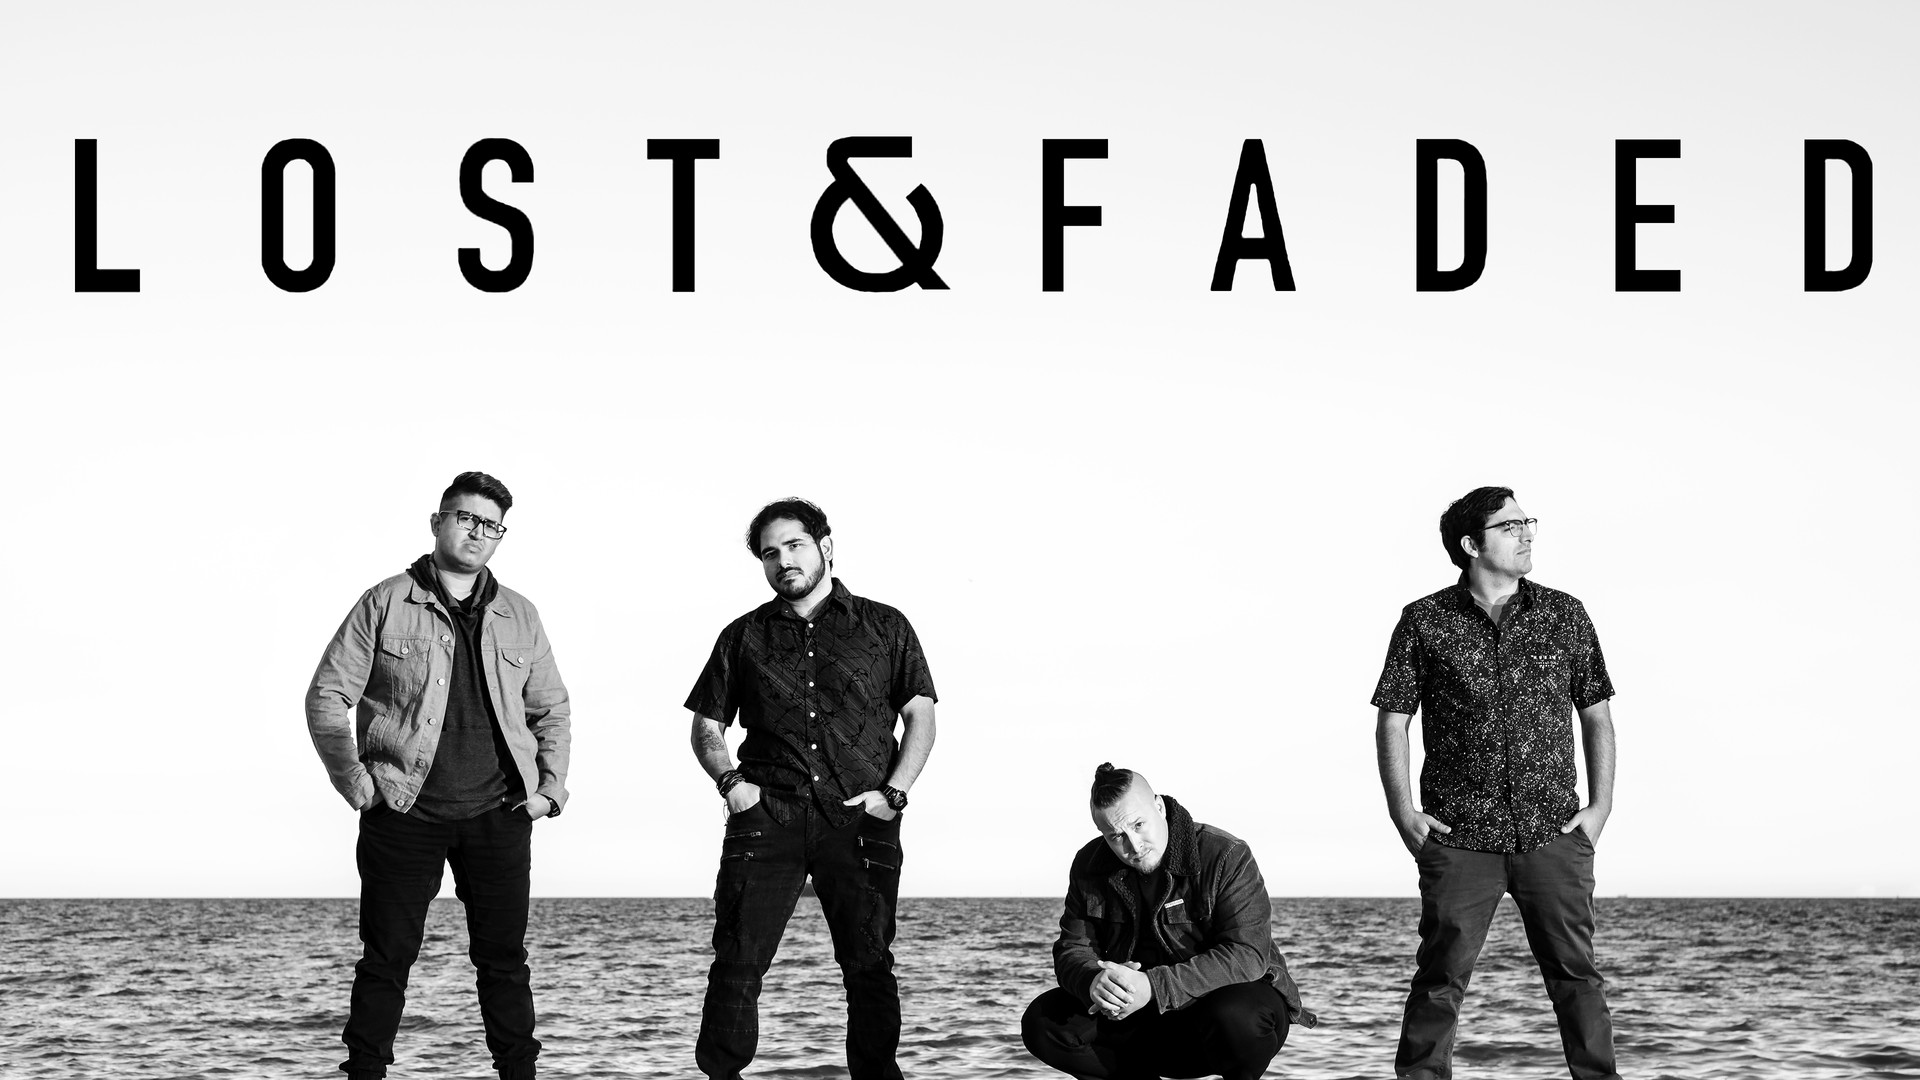 Lost & Faded - Group Photo